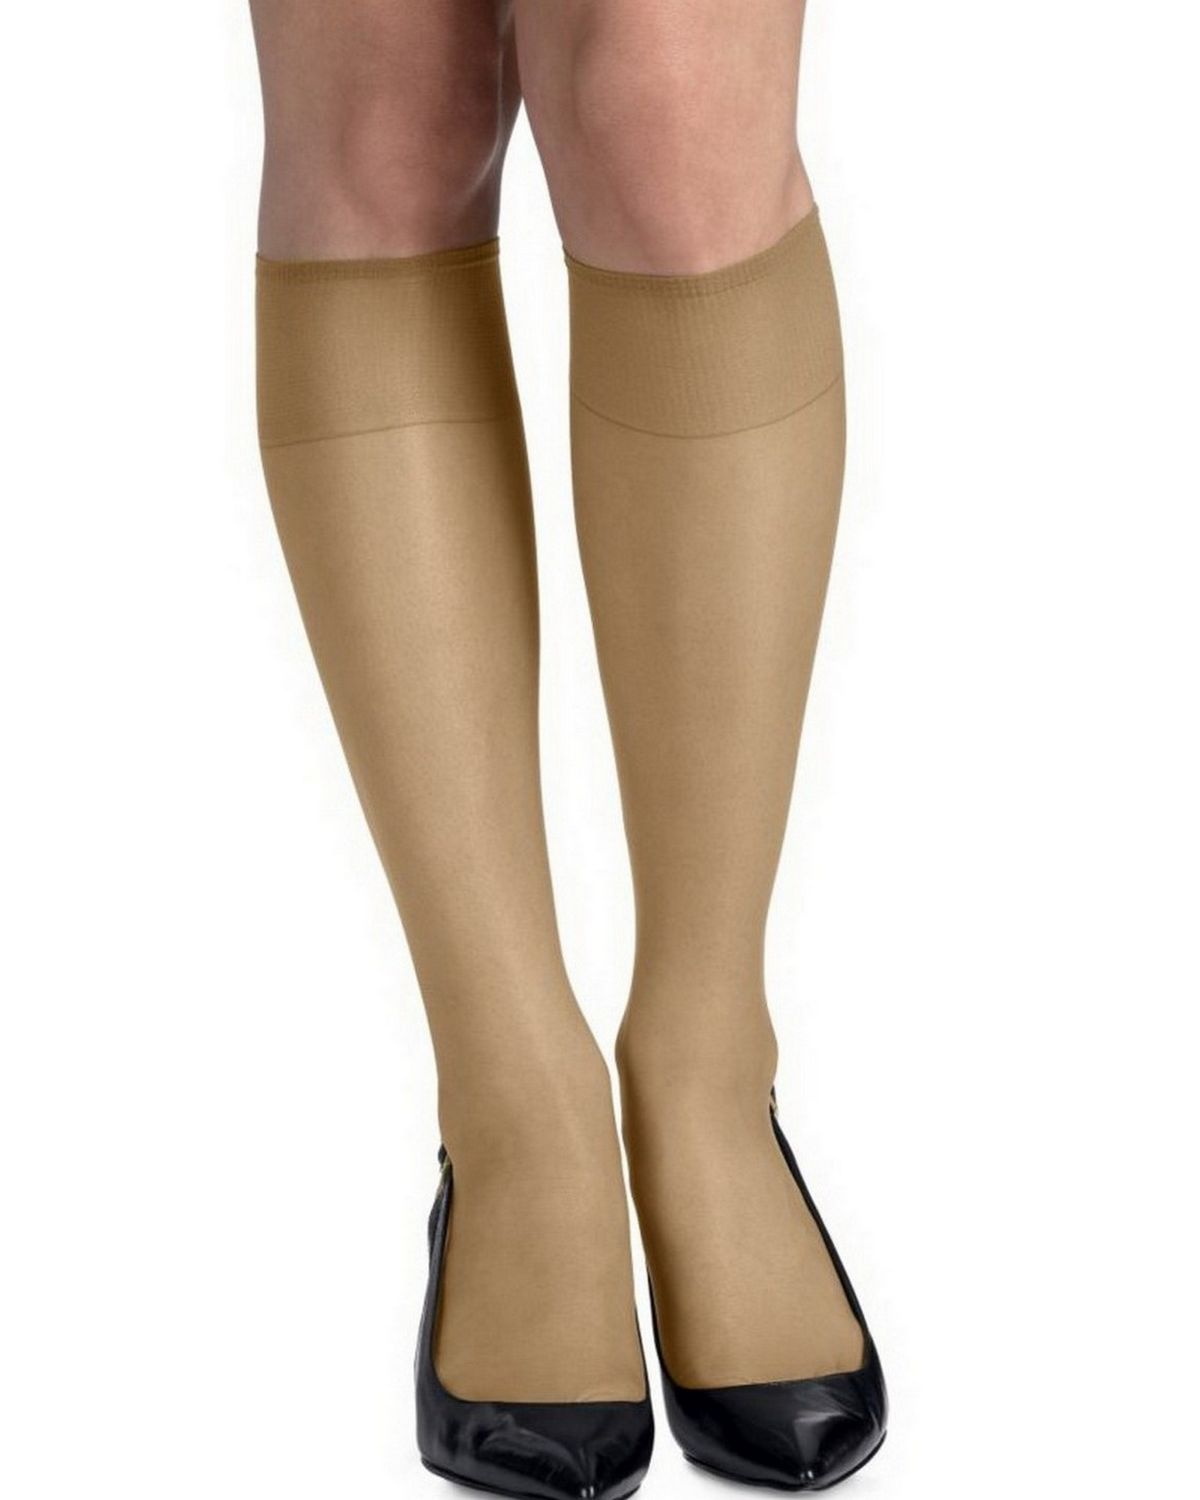 Hanes 775 Women's Silk Reflections Silky Sheer Knee Highs Reinforced Toe 2-Pack - Natural - One Size #silk